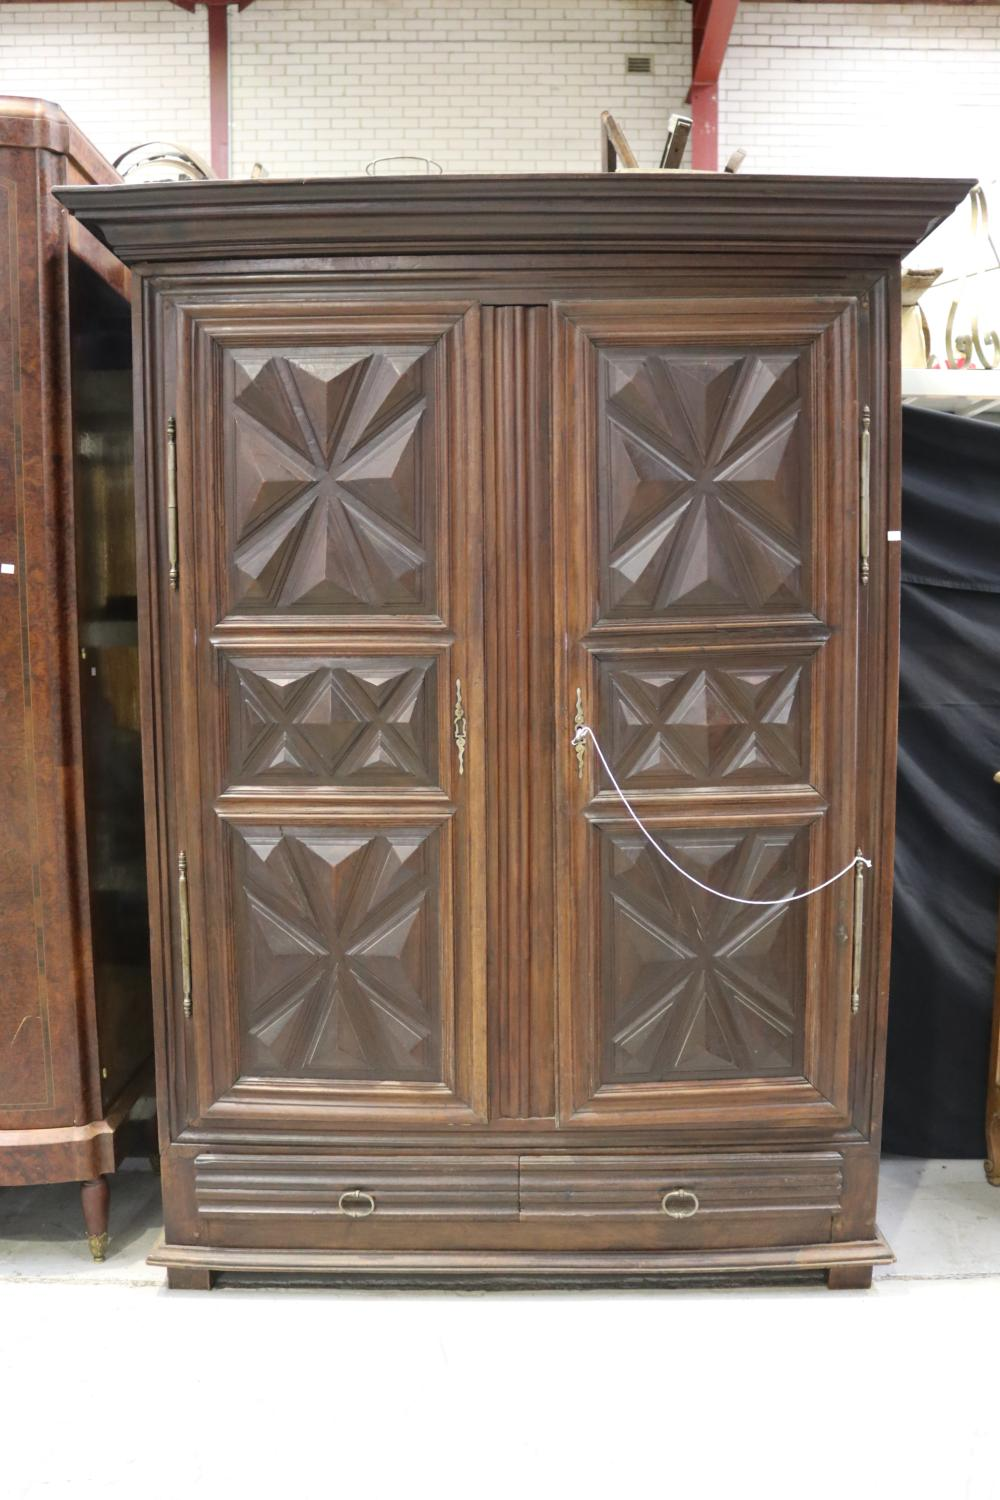 Antique 19th century French armoire, with geometric carved panel doors, two drawers & two doors, approx 215cm H x 166cm W x 70cm D